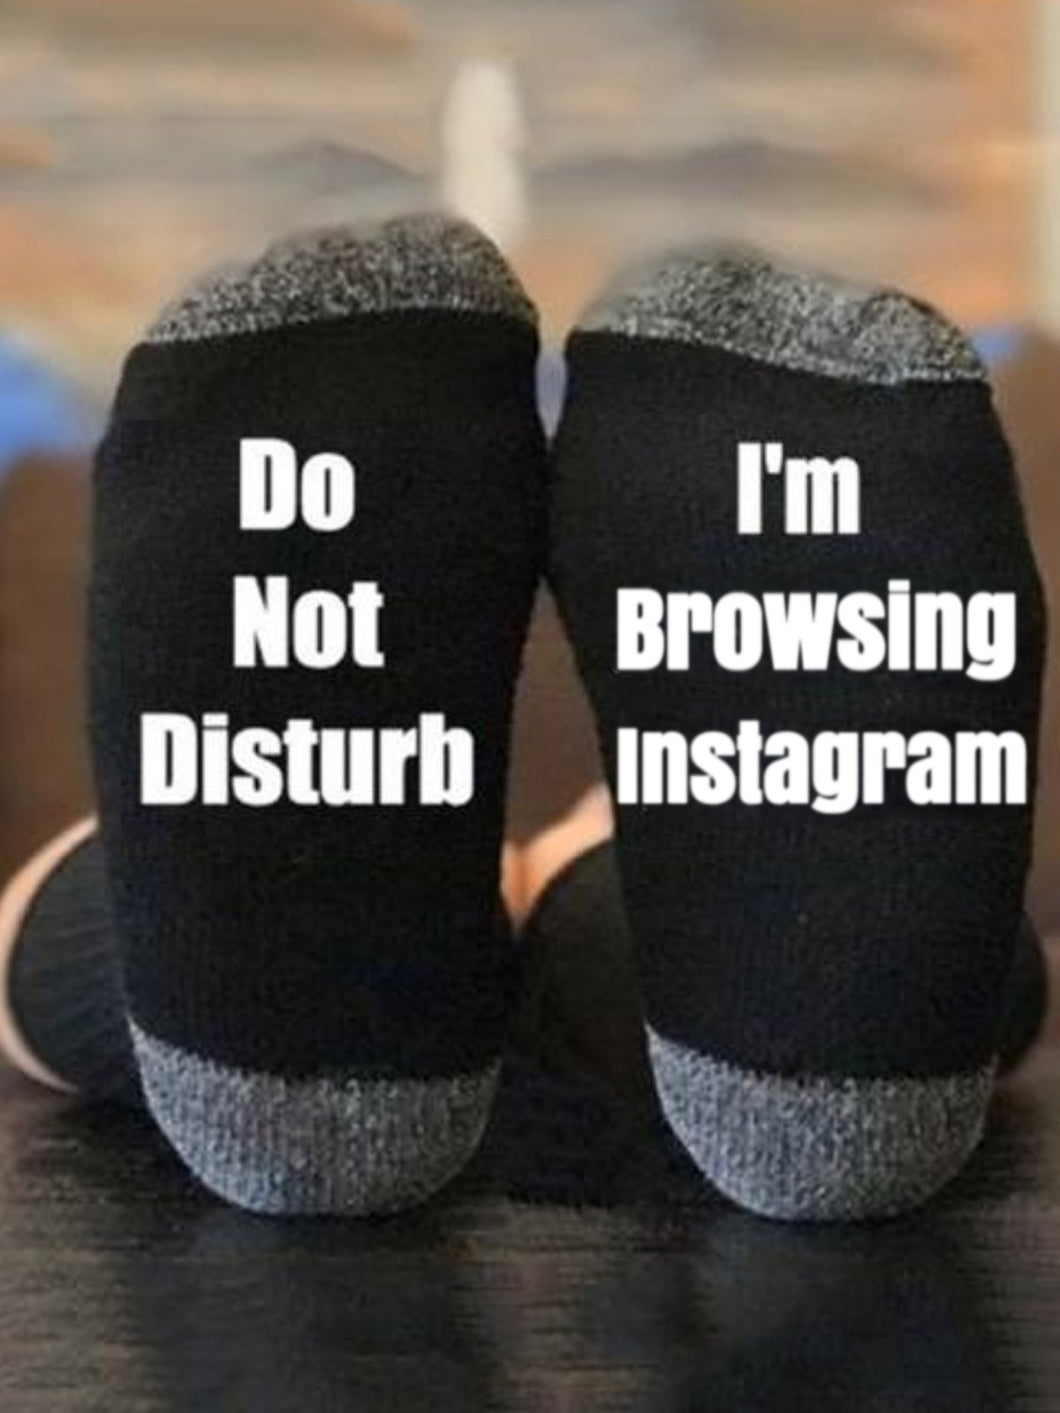 I'm Browsing Instagram Socks